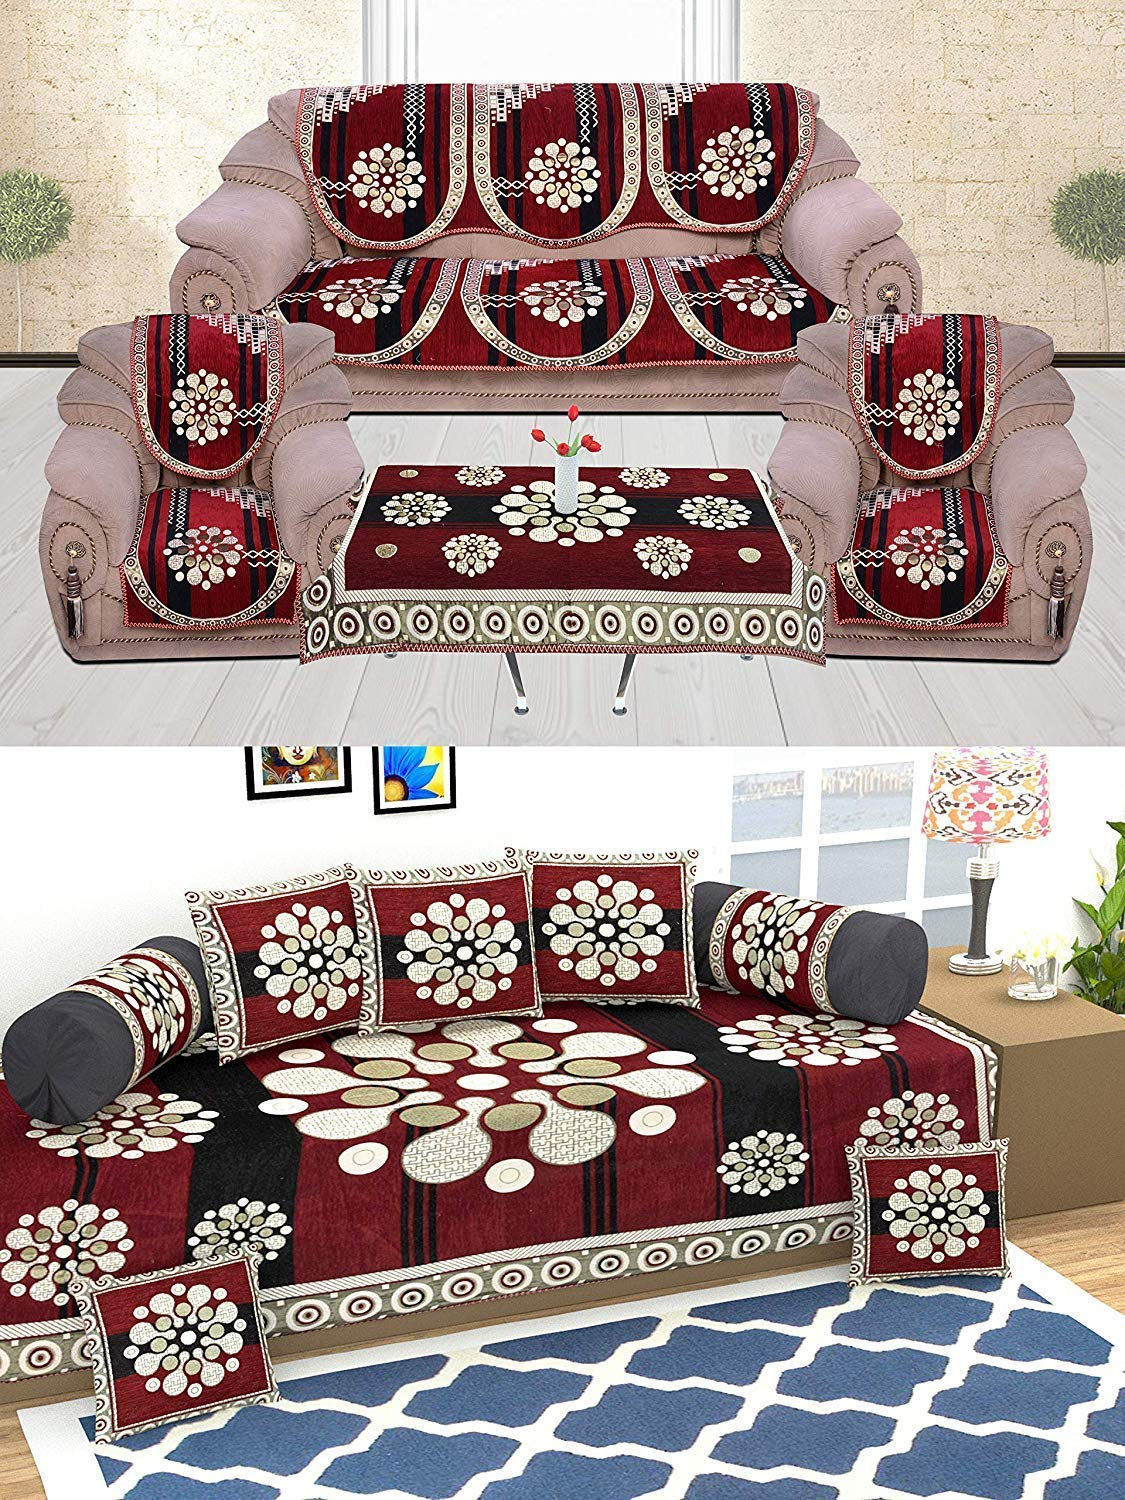 Terrific Sofa Cover Set And Diwan Set Combo Amazon In Home Kitchen Lamtechconsult Wood Chair Design Ideas Lamtechconsultcom